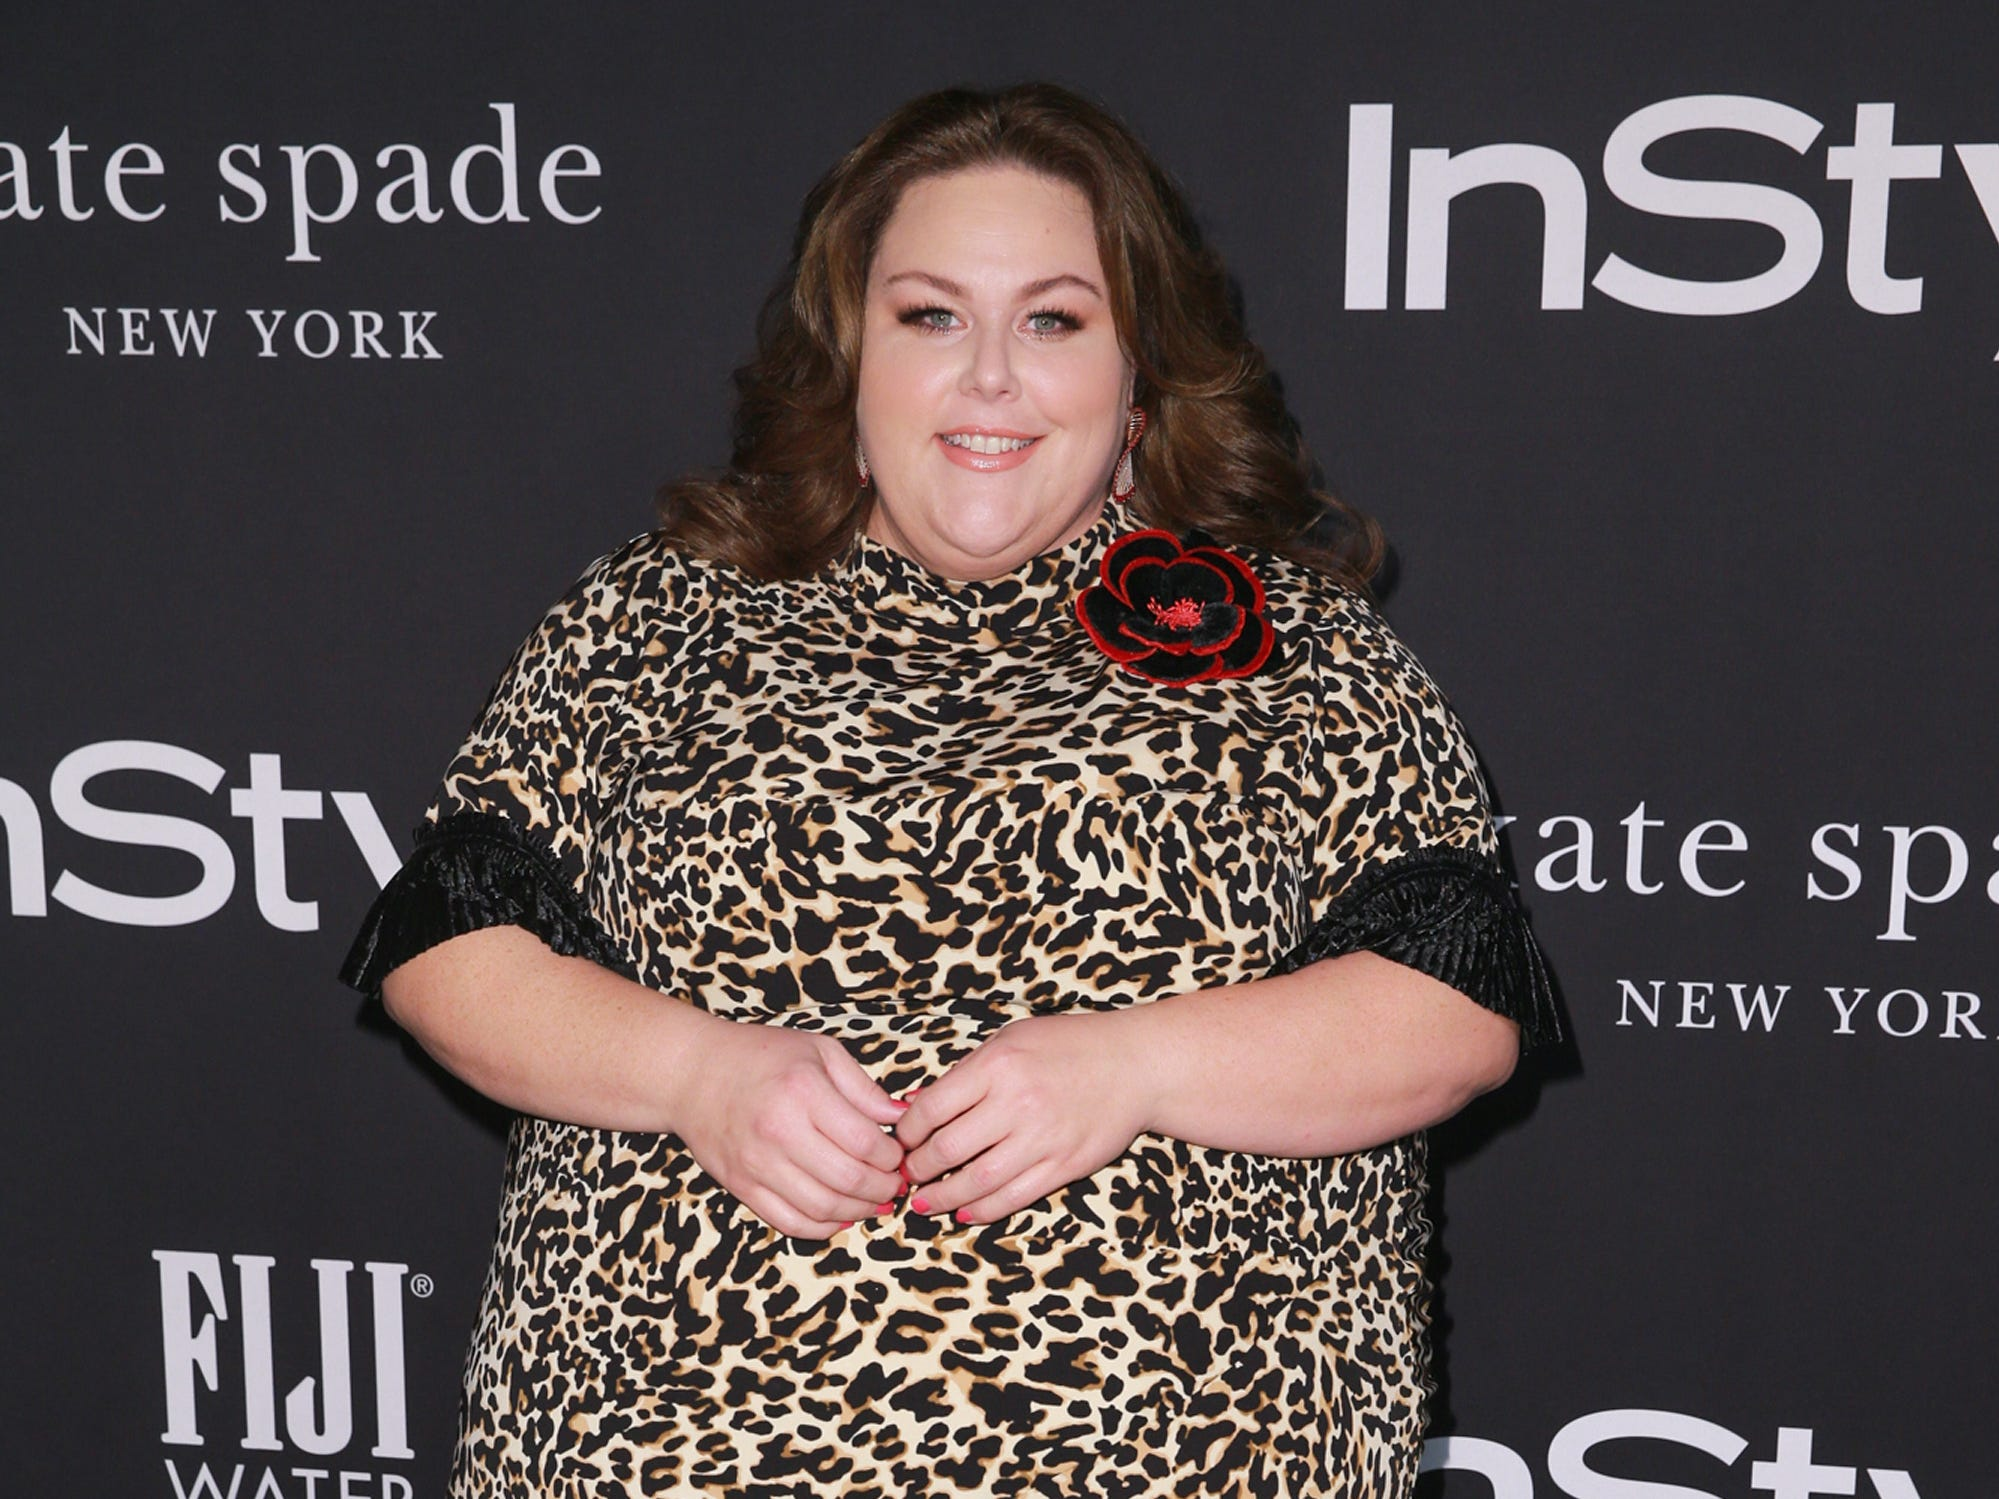 LOS ANGELES, CA - OCTOBER 22:  Chrissy Metz attends the 2018 InStyle Awards at The Getty Center on October 22, 2018 in Los Angeles, California.  (Photo by Rich Fury/Getty Images) ORG XMIT: 775236597 ORIG FILE ID: 1052793382